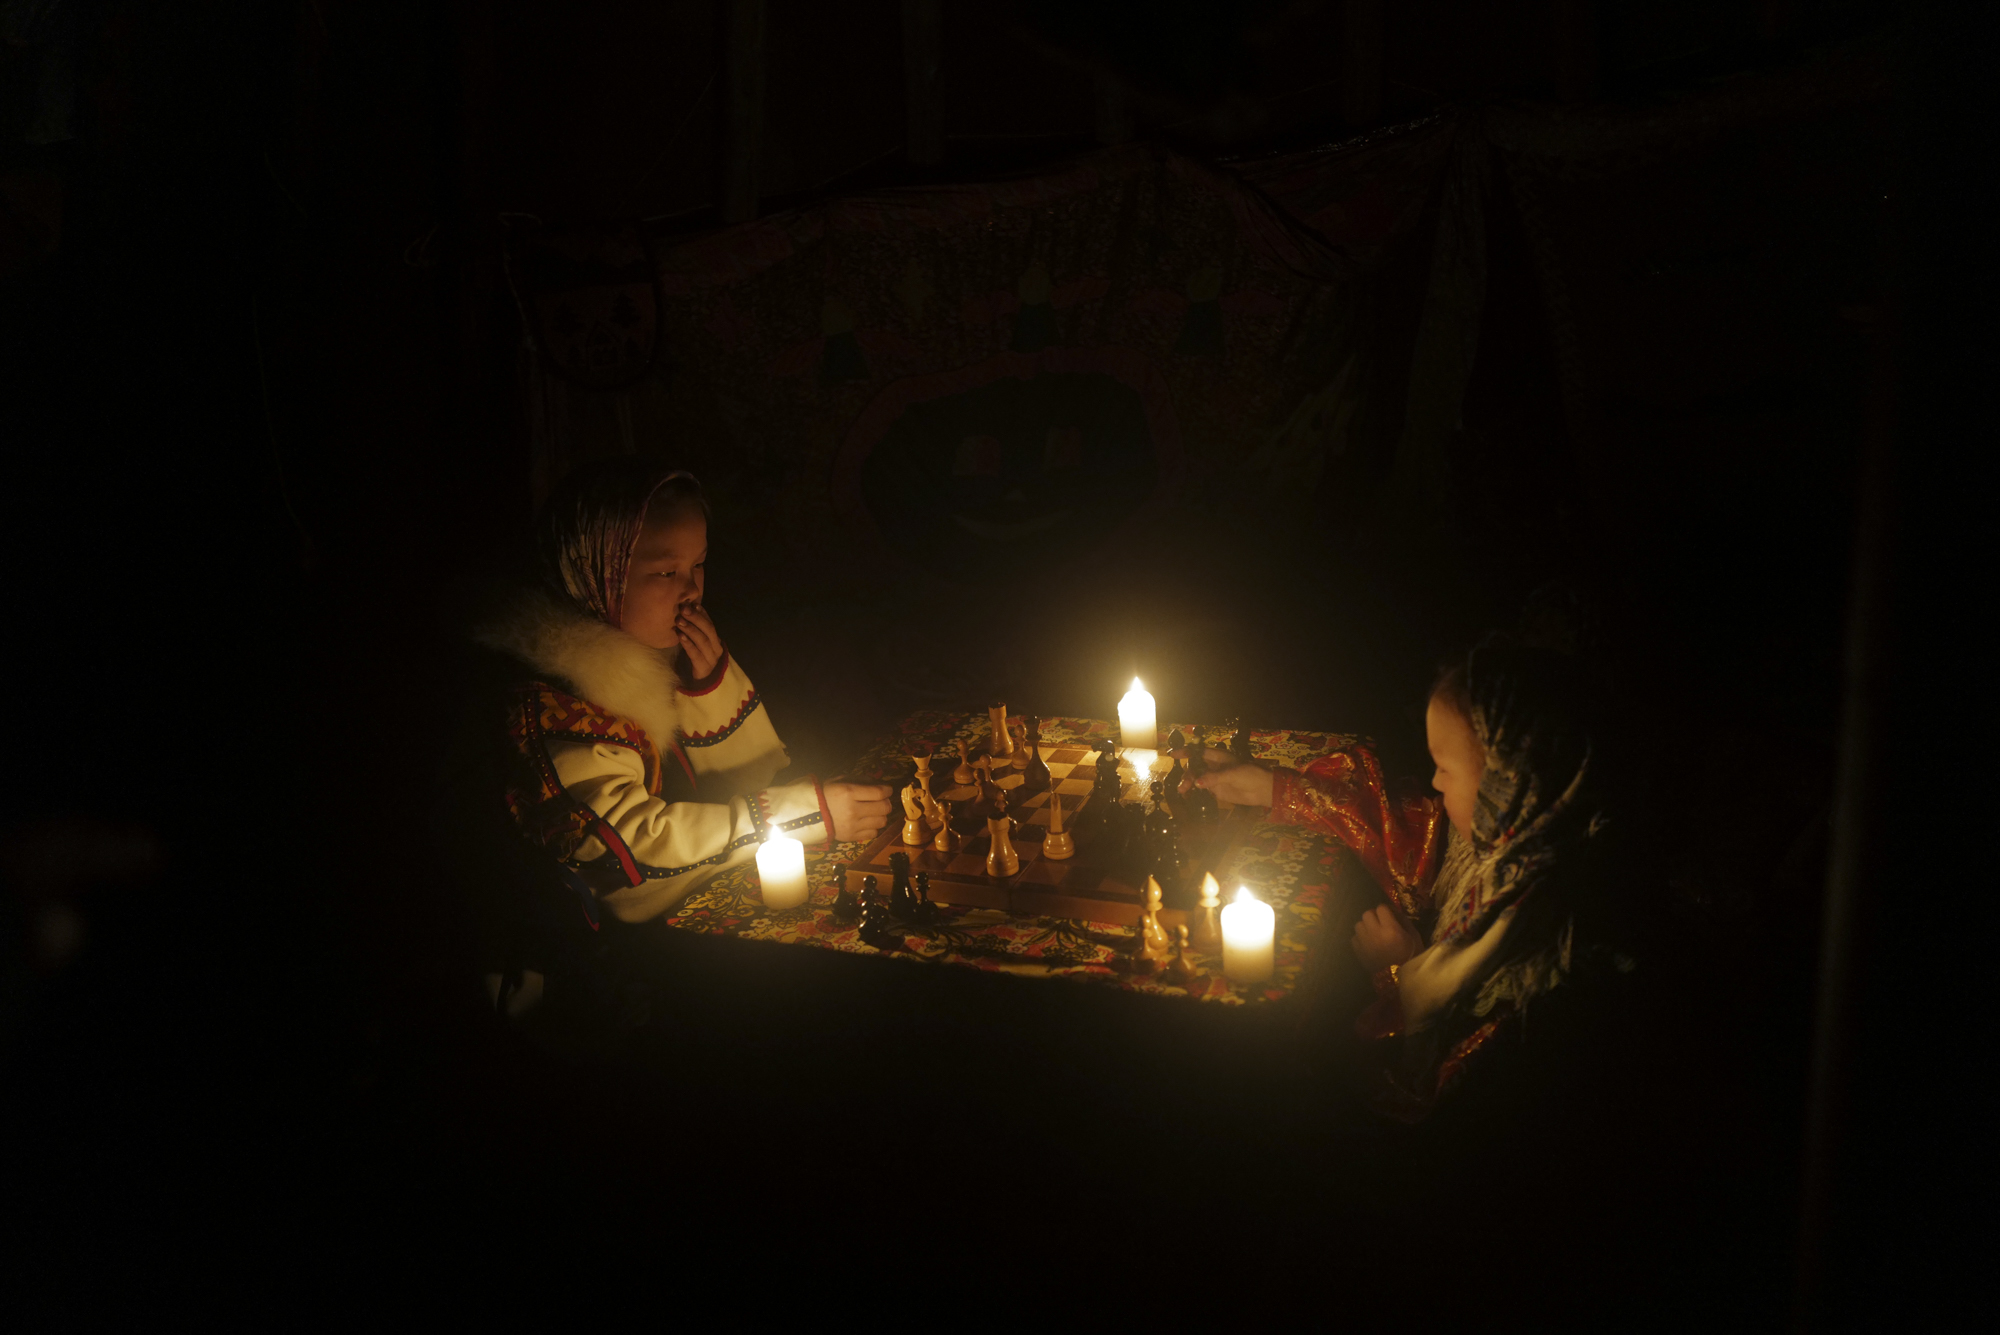 Two Nenets school children were playing Russian chess under the candlelight. Photographed with Leica Q2, Siberia, 2019.  ©  Rosalyn Tay.